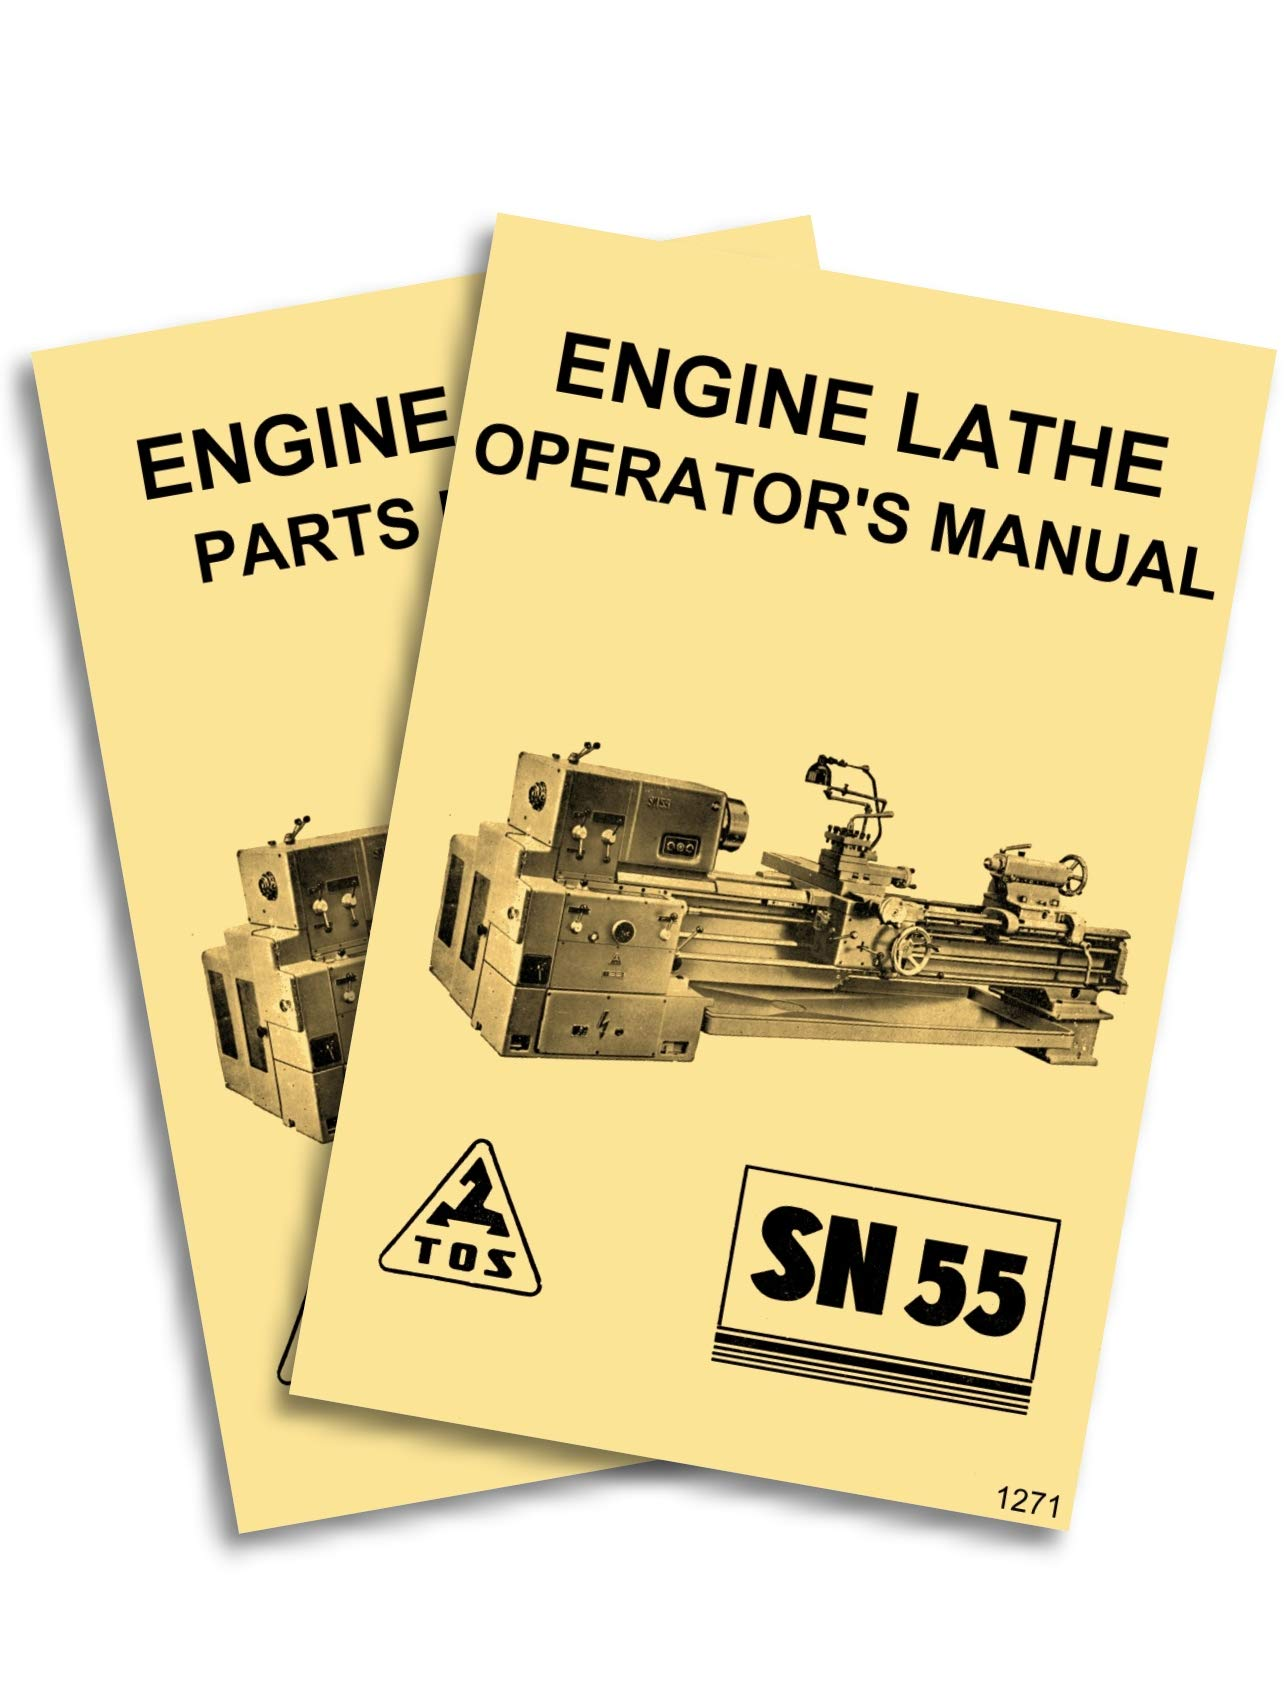 TOS SN55 Engine Metal Lathe Owner's Instructions and Parts Manuals